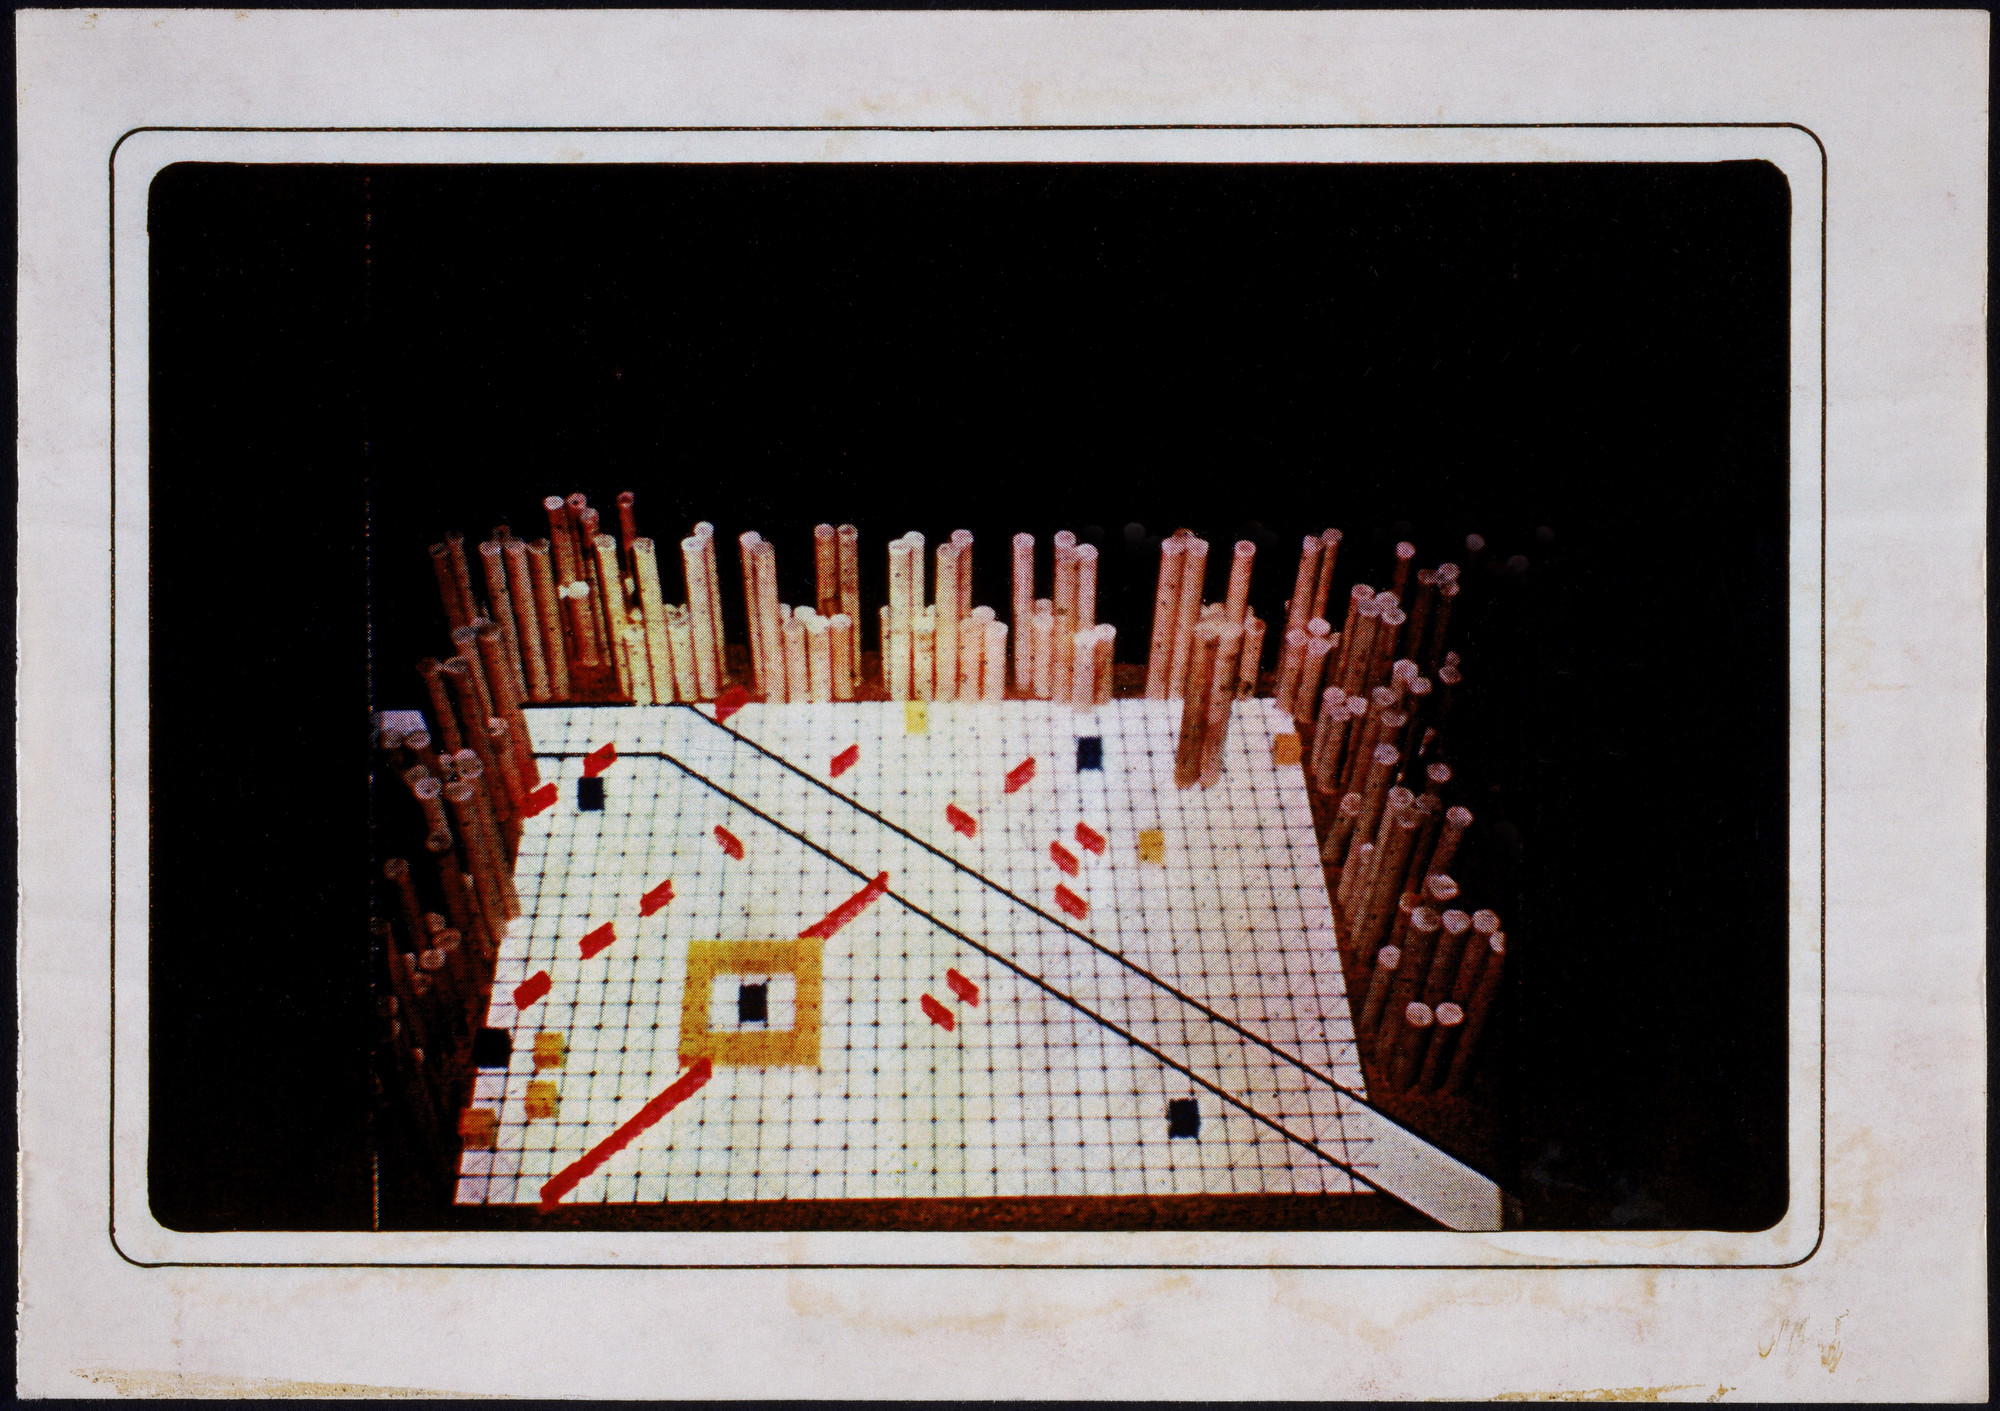 Cedric Price. Generator Project, White Oak, Florida, Perspective of study model. 1978-80